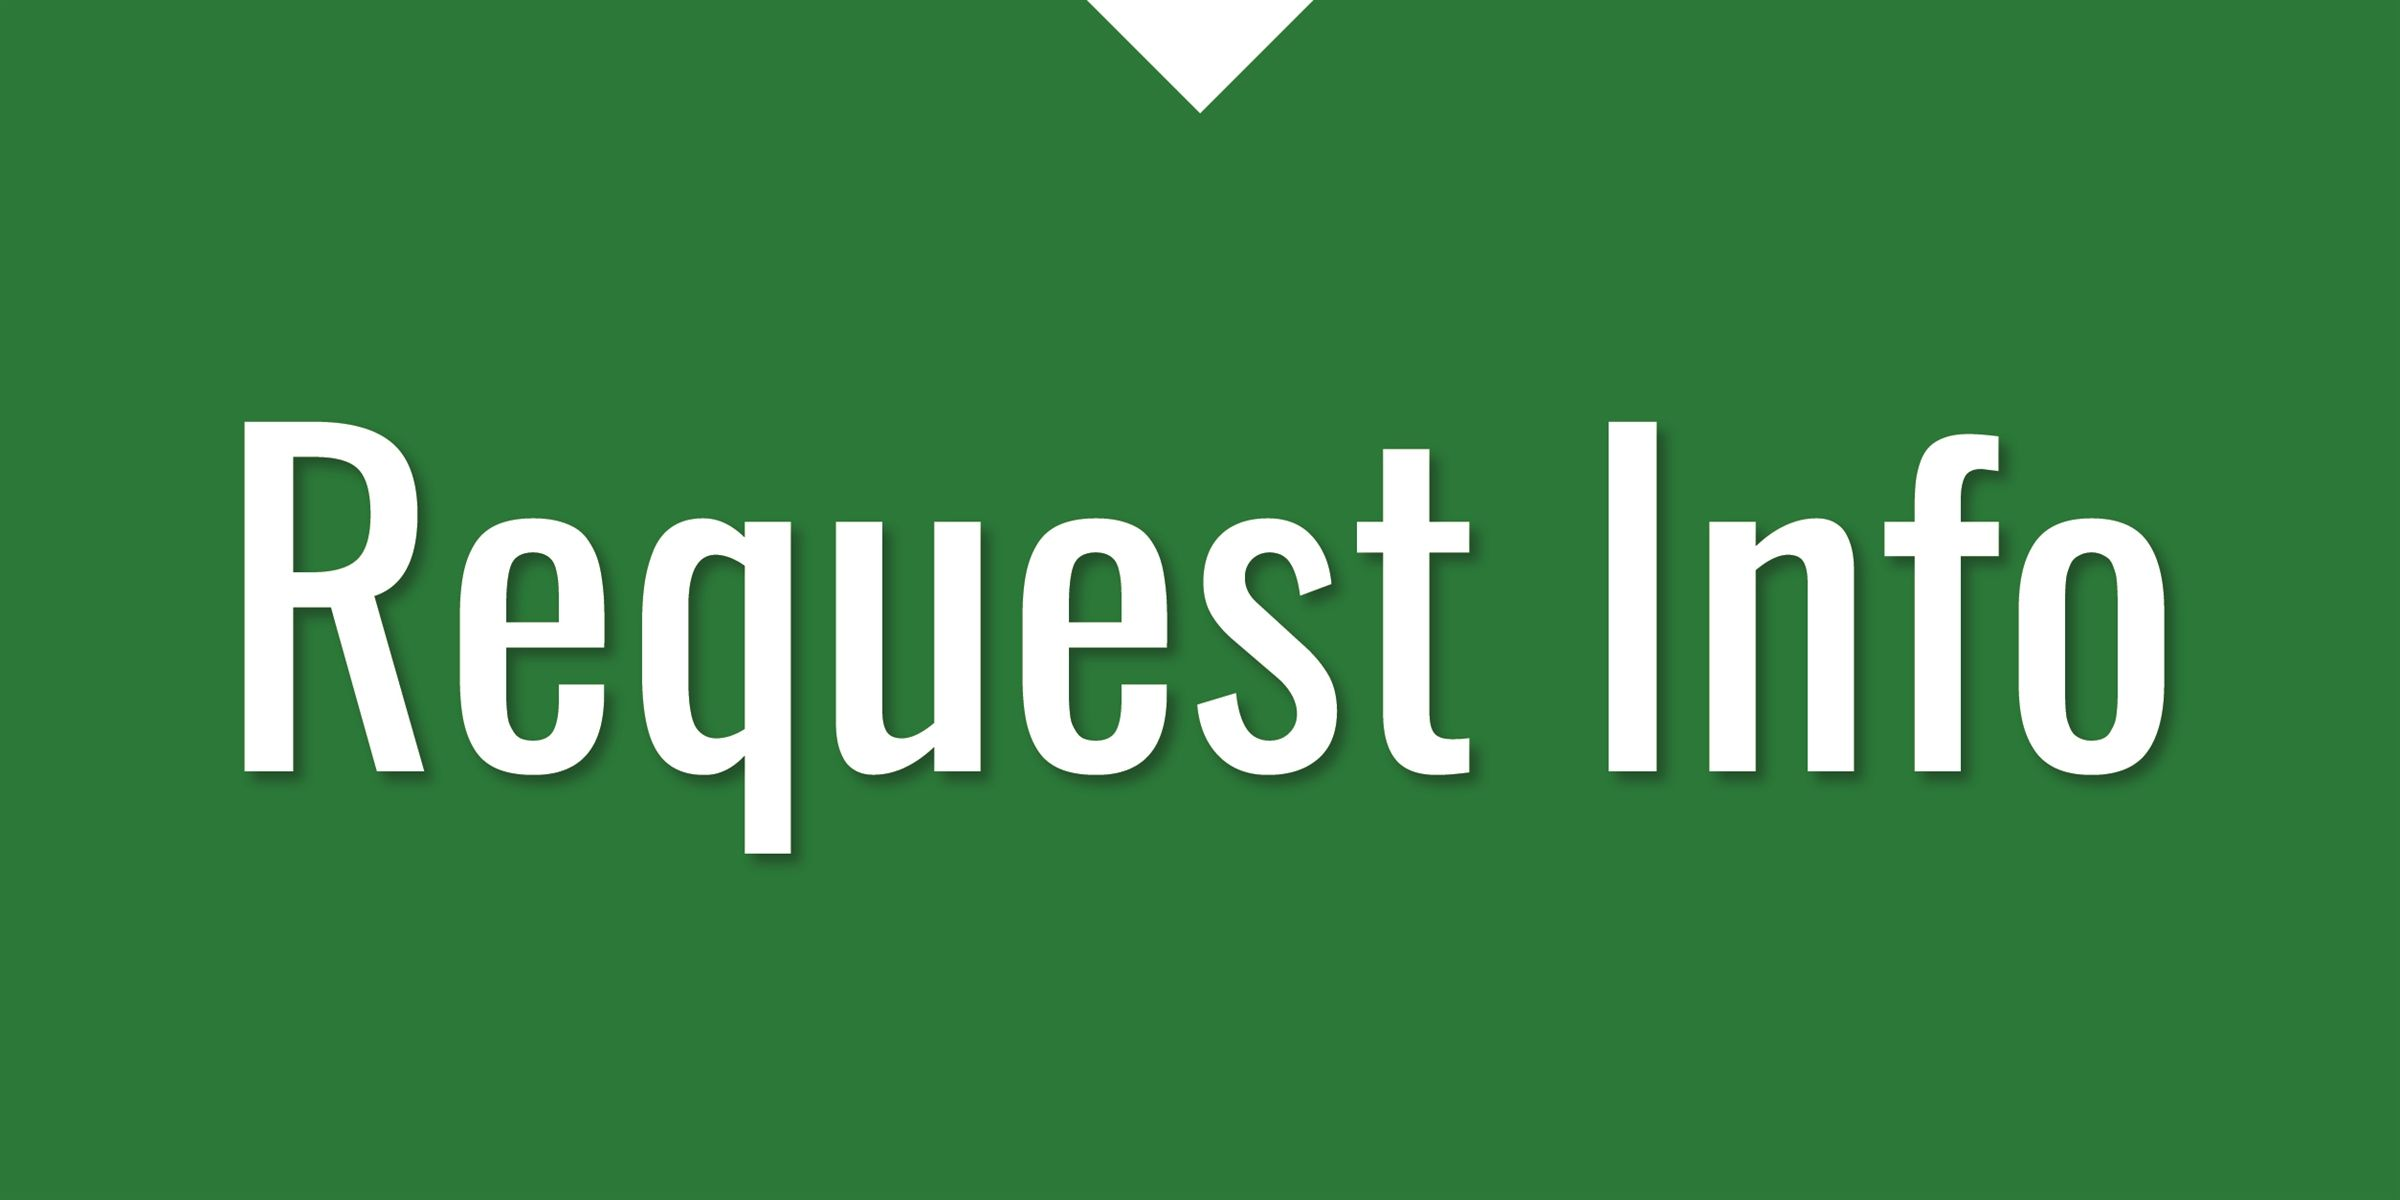 Request Info Bottom Button